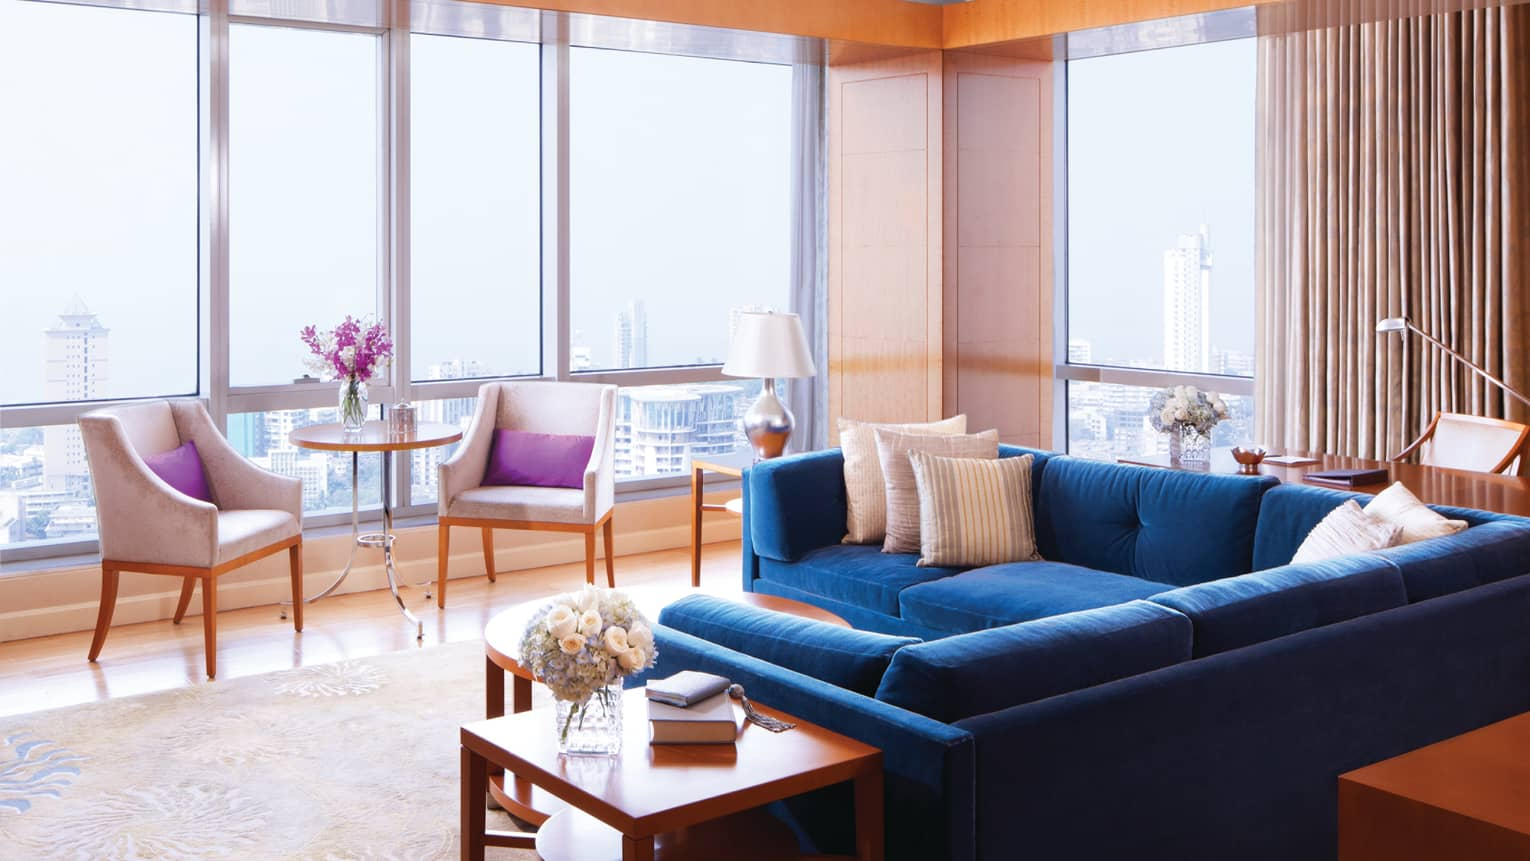 Deluxe Suite-Sea room with blue sectional sofa by floor-to-ceiling sunny windows, chairs